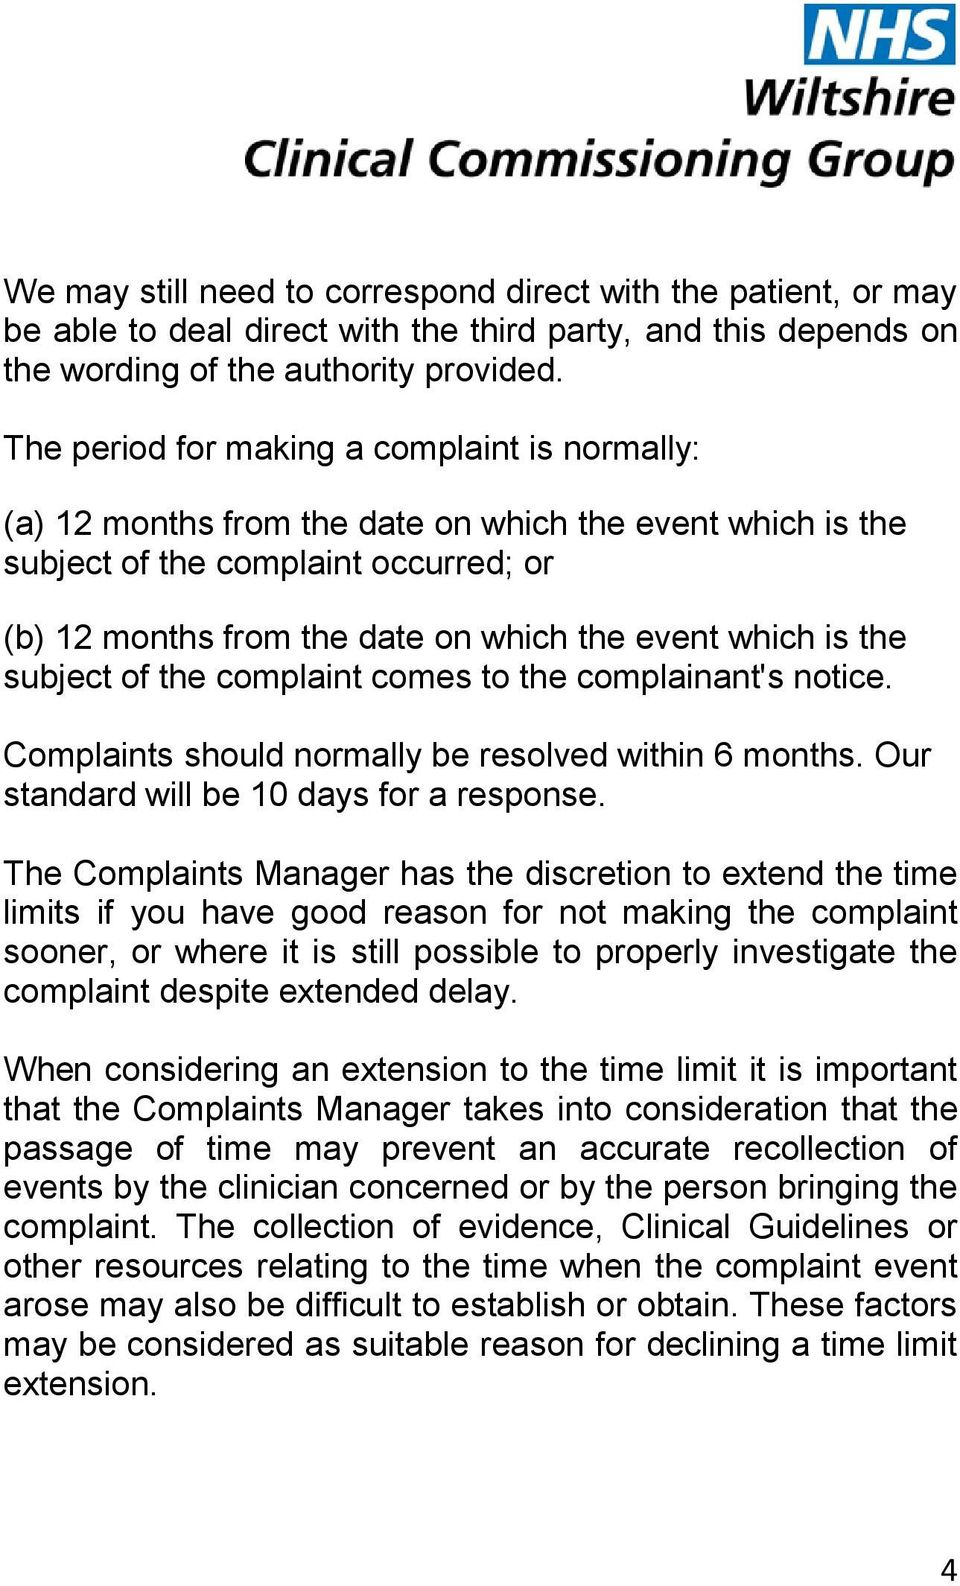 is the subject of the complaint comes to the complainant's notice. Complaints should normally be resolved within 6 months. Our standard will be 10 days for a response.